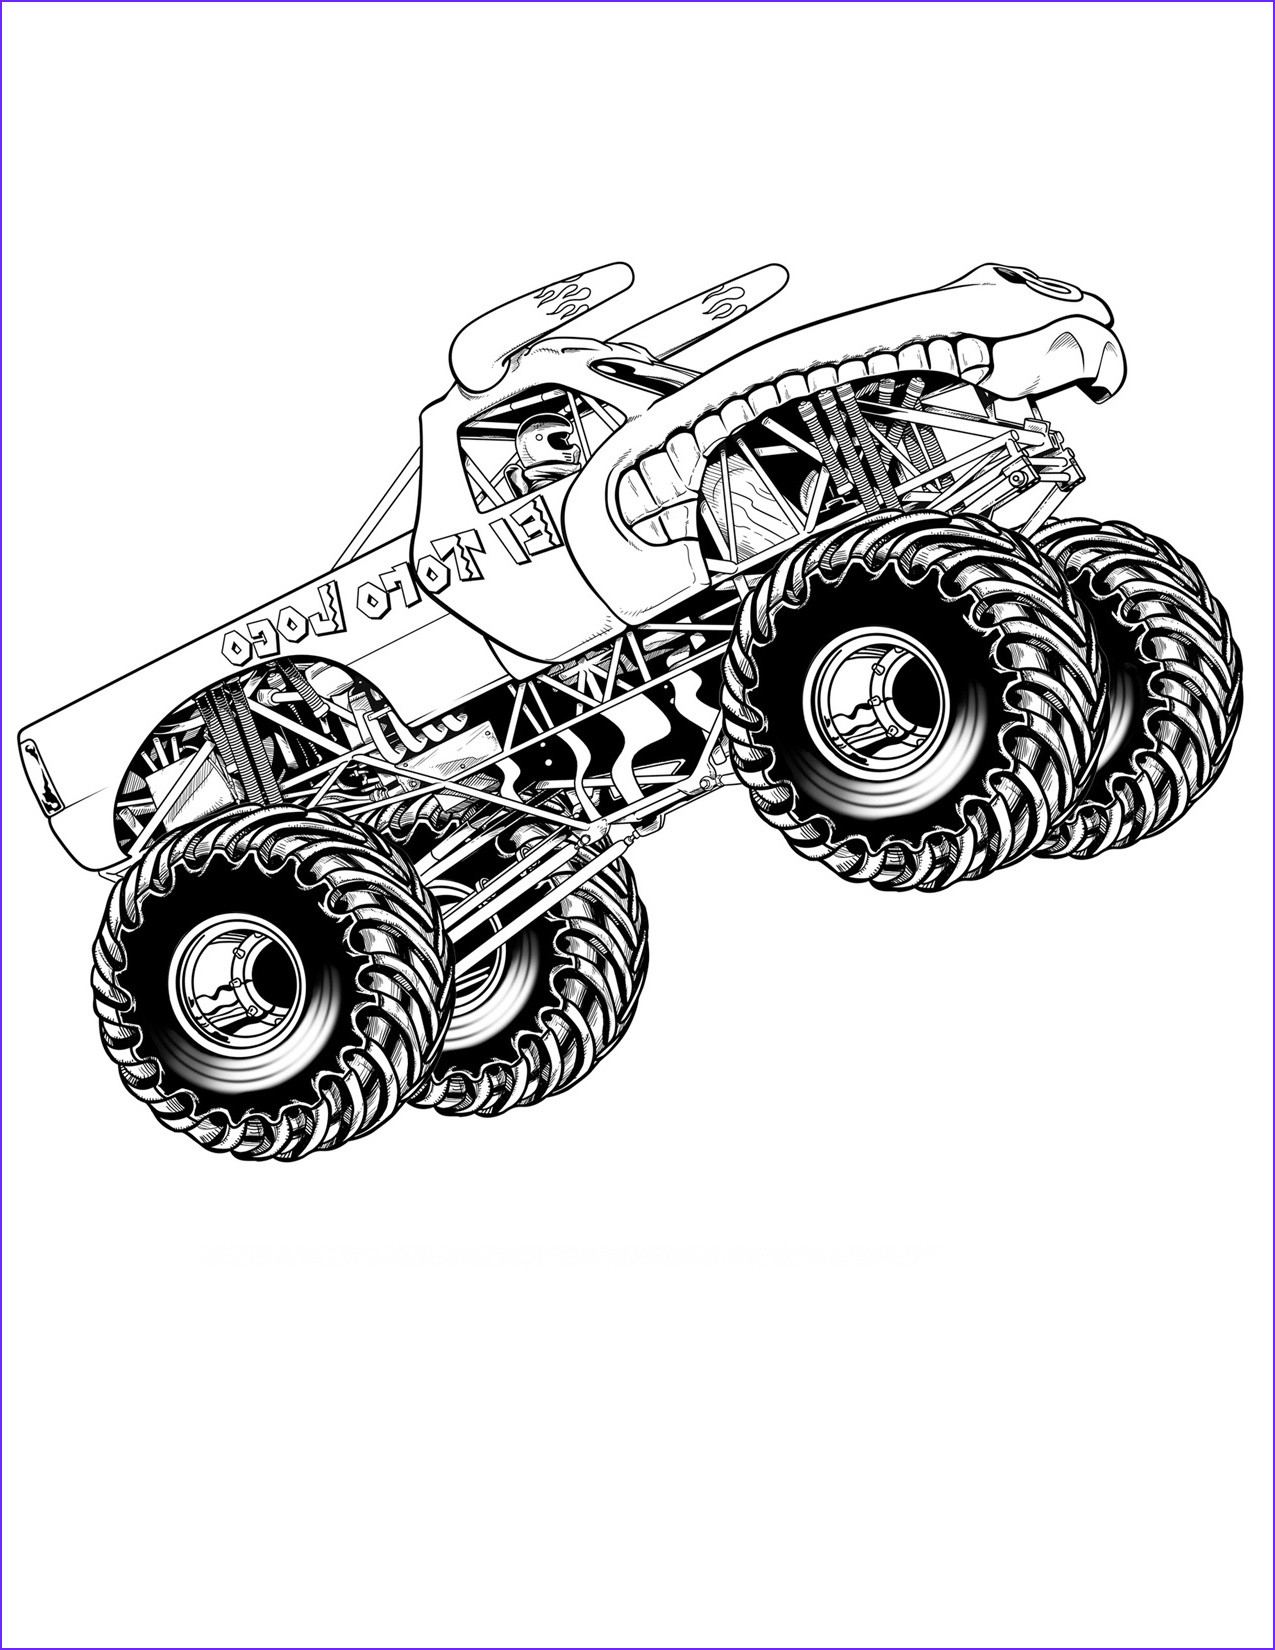 Truck Coloring Book Beautiful Collection Free Printable Monster Truck Coloring Pages for Kids